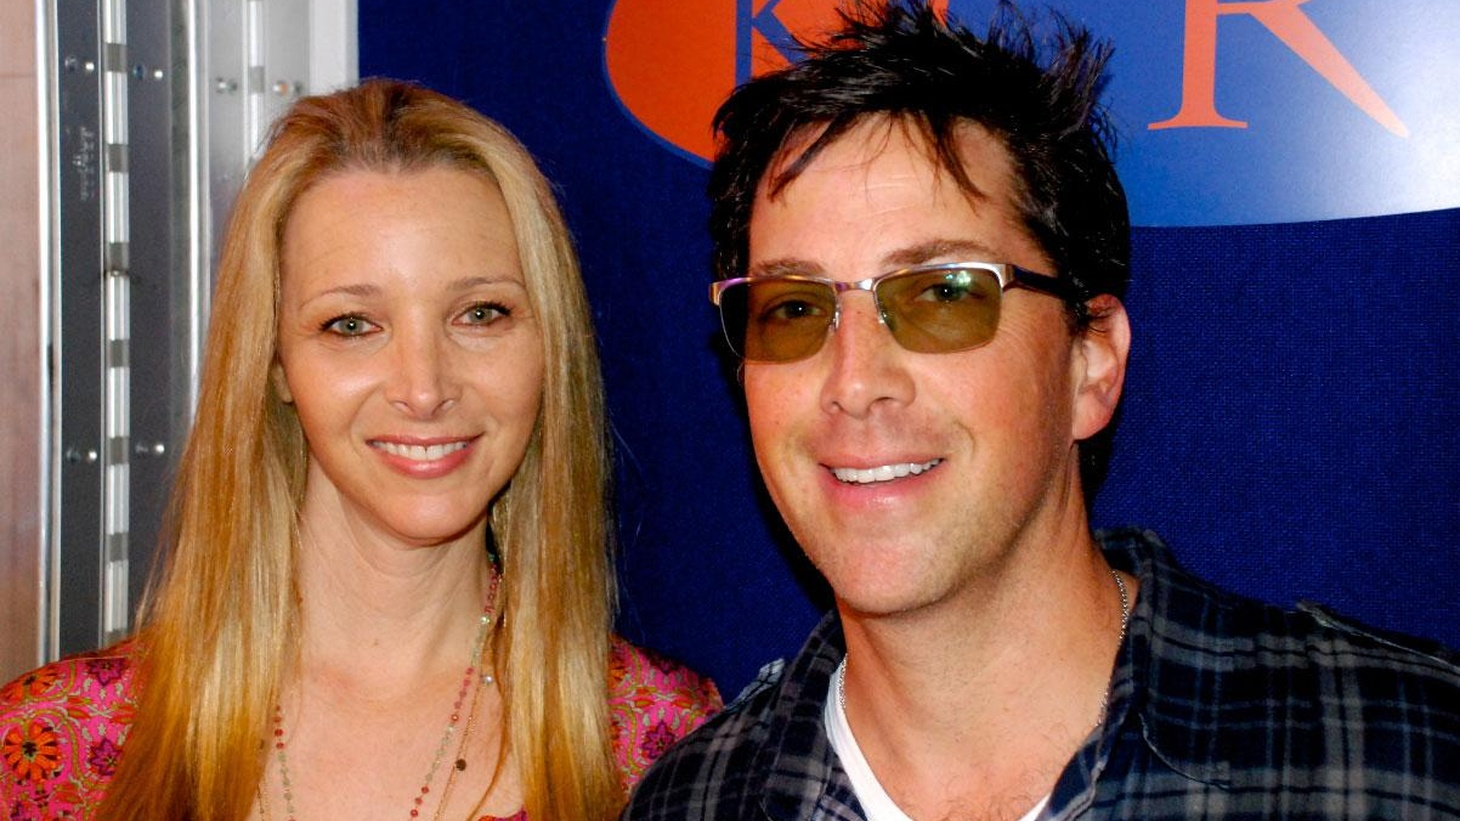 Lisa Kudrow and Dan Bucatinsky on their working partnership and transforming their webseries into a TV show. Plus, a story told at the live Story Slam we hosted with The Moth.